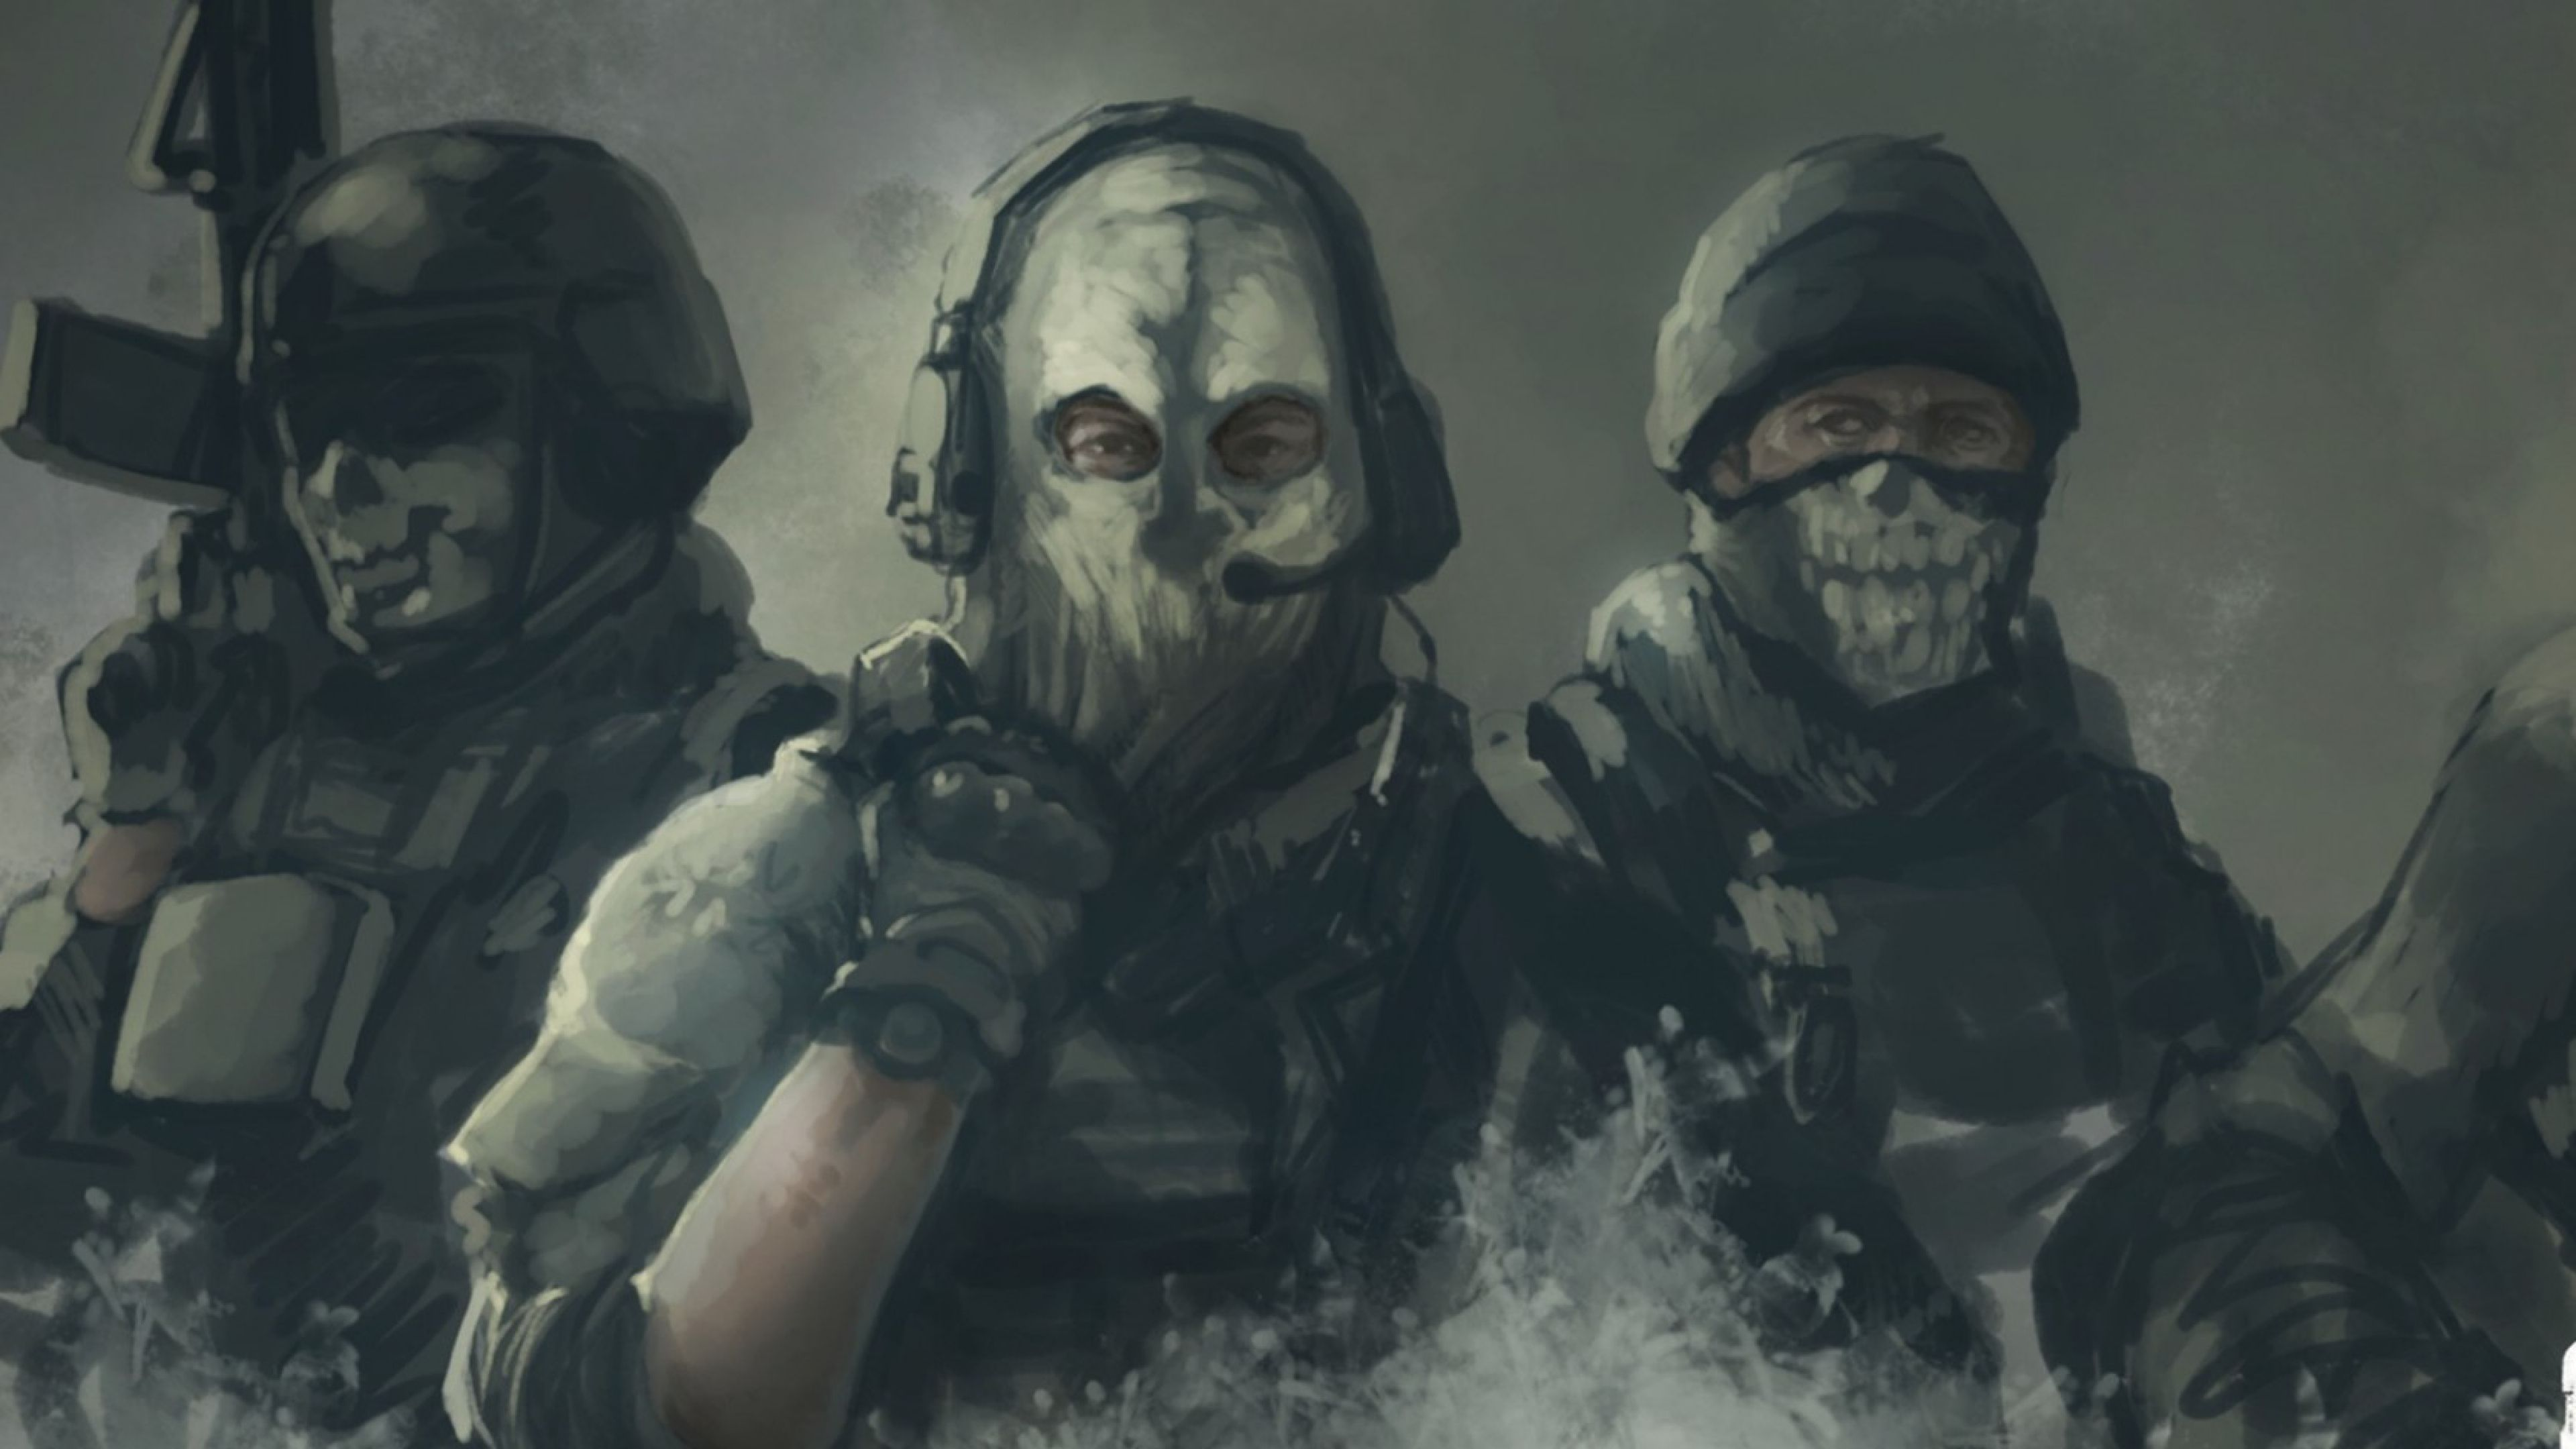 Download Wallpaper 3840x2160 Call of duty Ghosts Art 4K Ultra HD 3840x2160